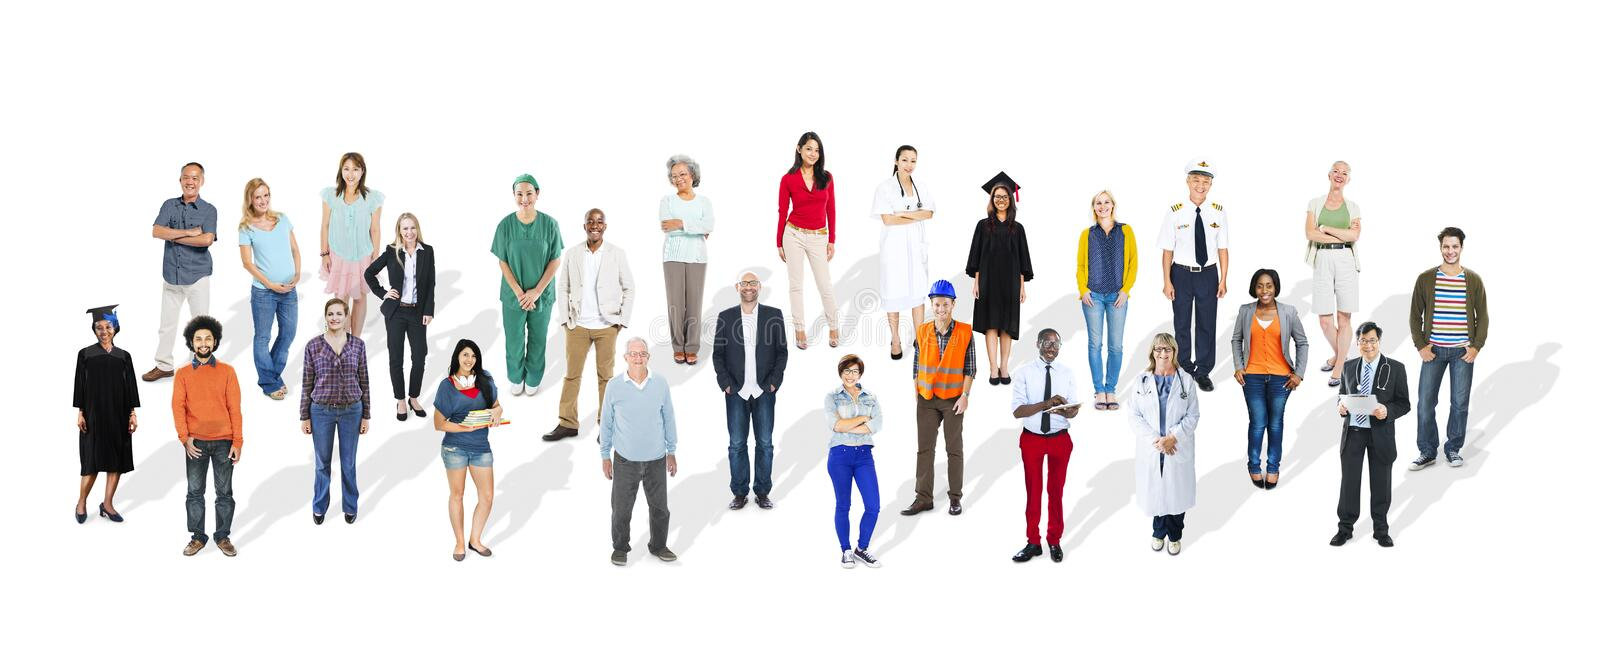 Diverse Large Group People Multiethnic Community royalty free stock image